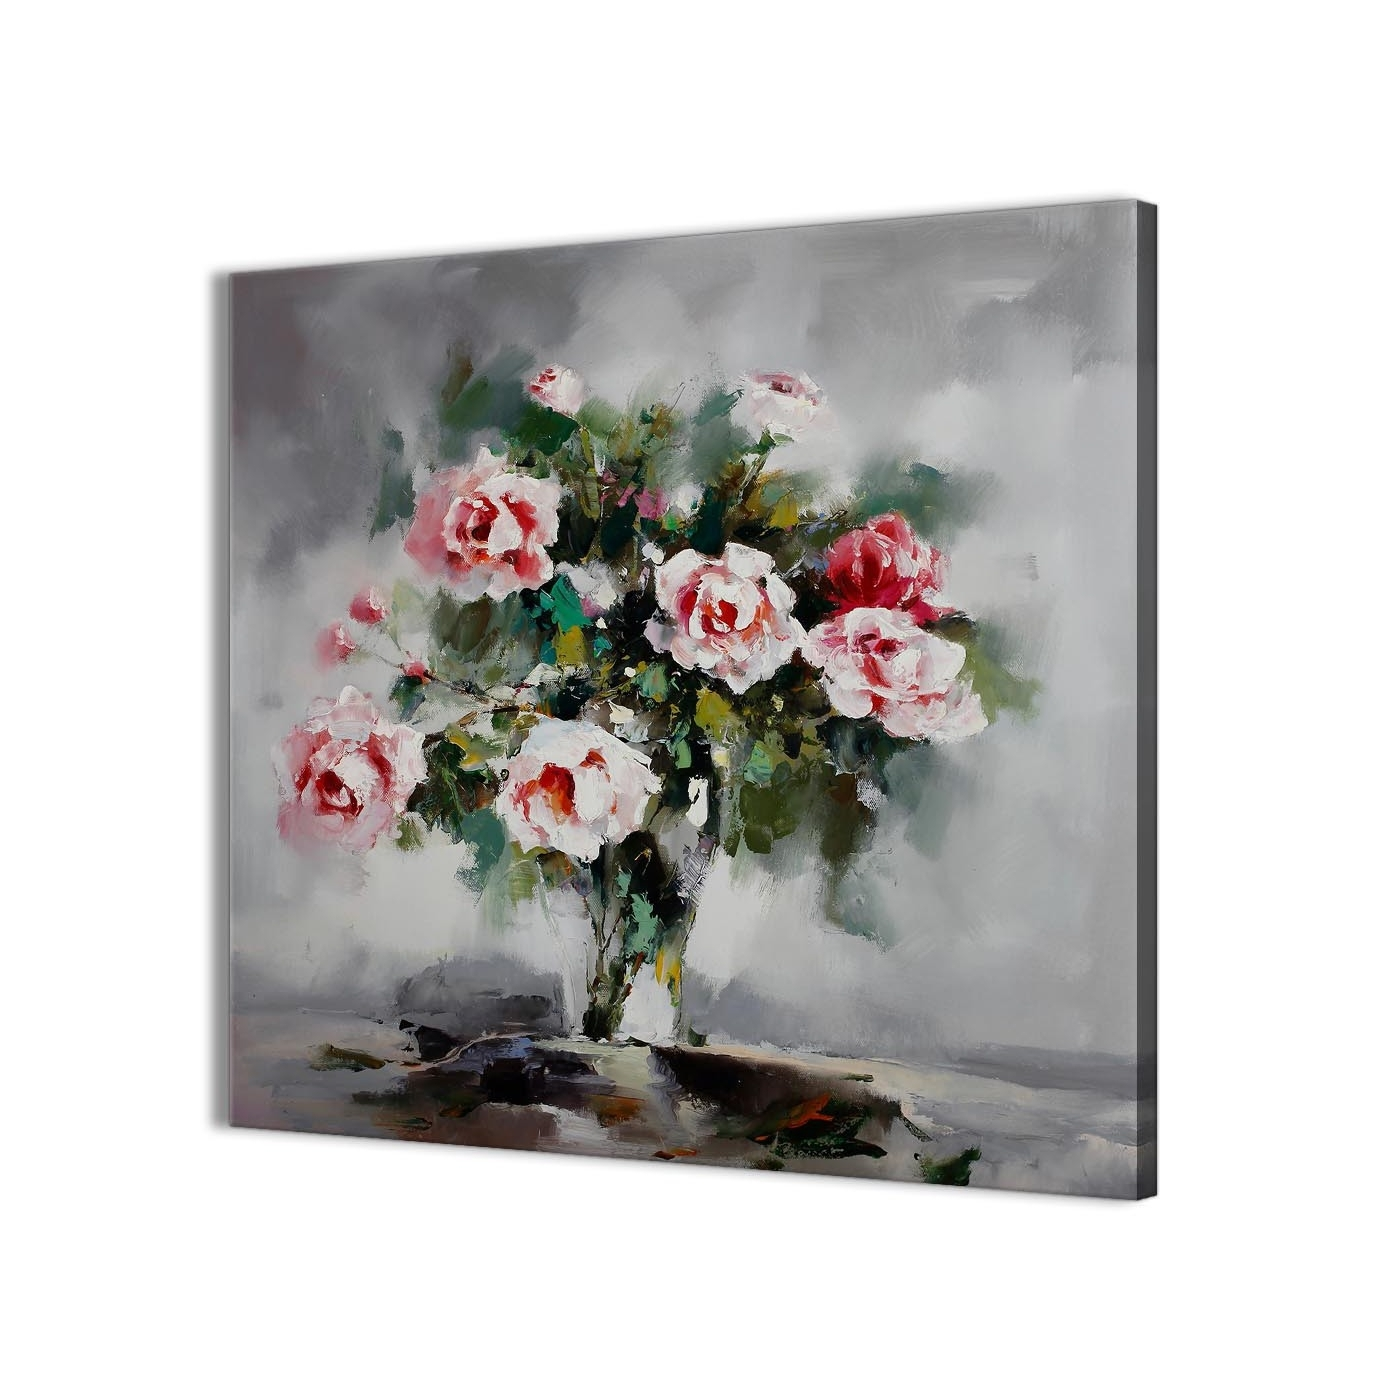 Kitchen Canvas Wall Art Intended For Most Recent Pink Grey Flowers Painting Kitchen Canvas Wall Art Accessories (View 7 of 15)